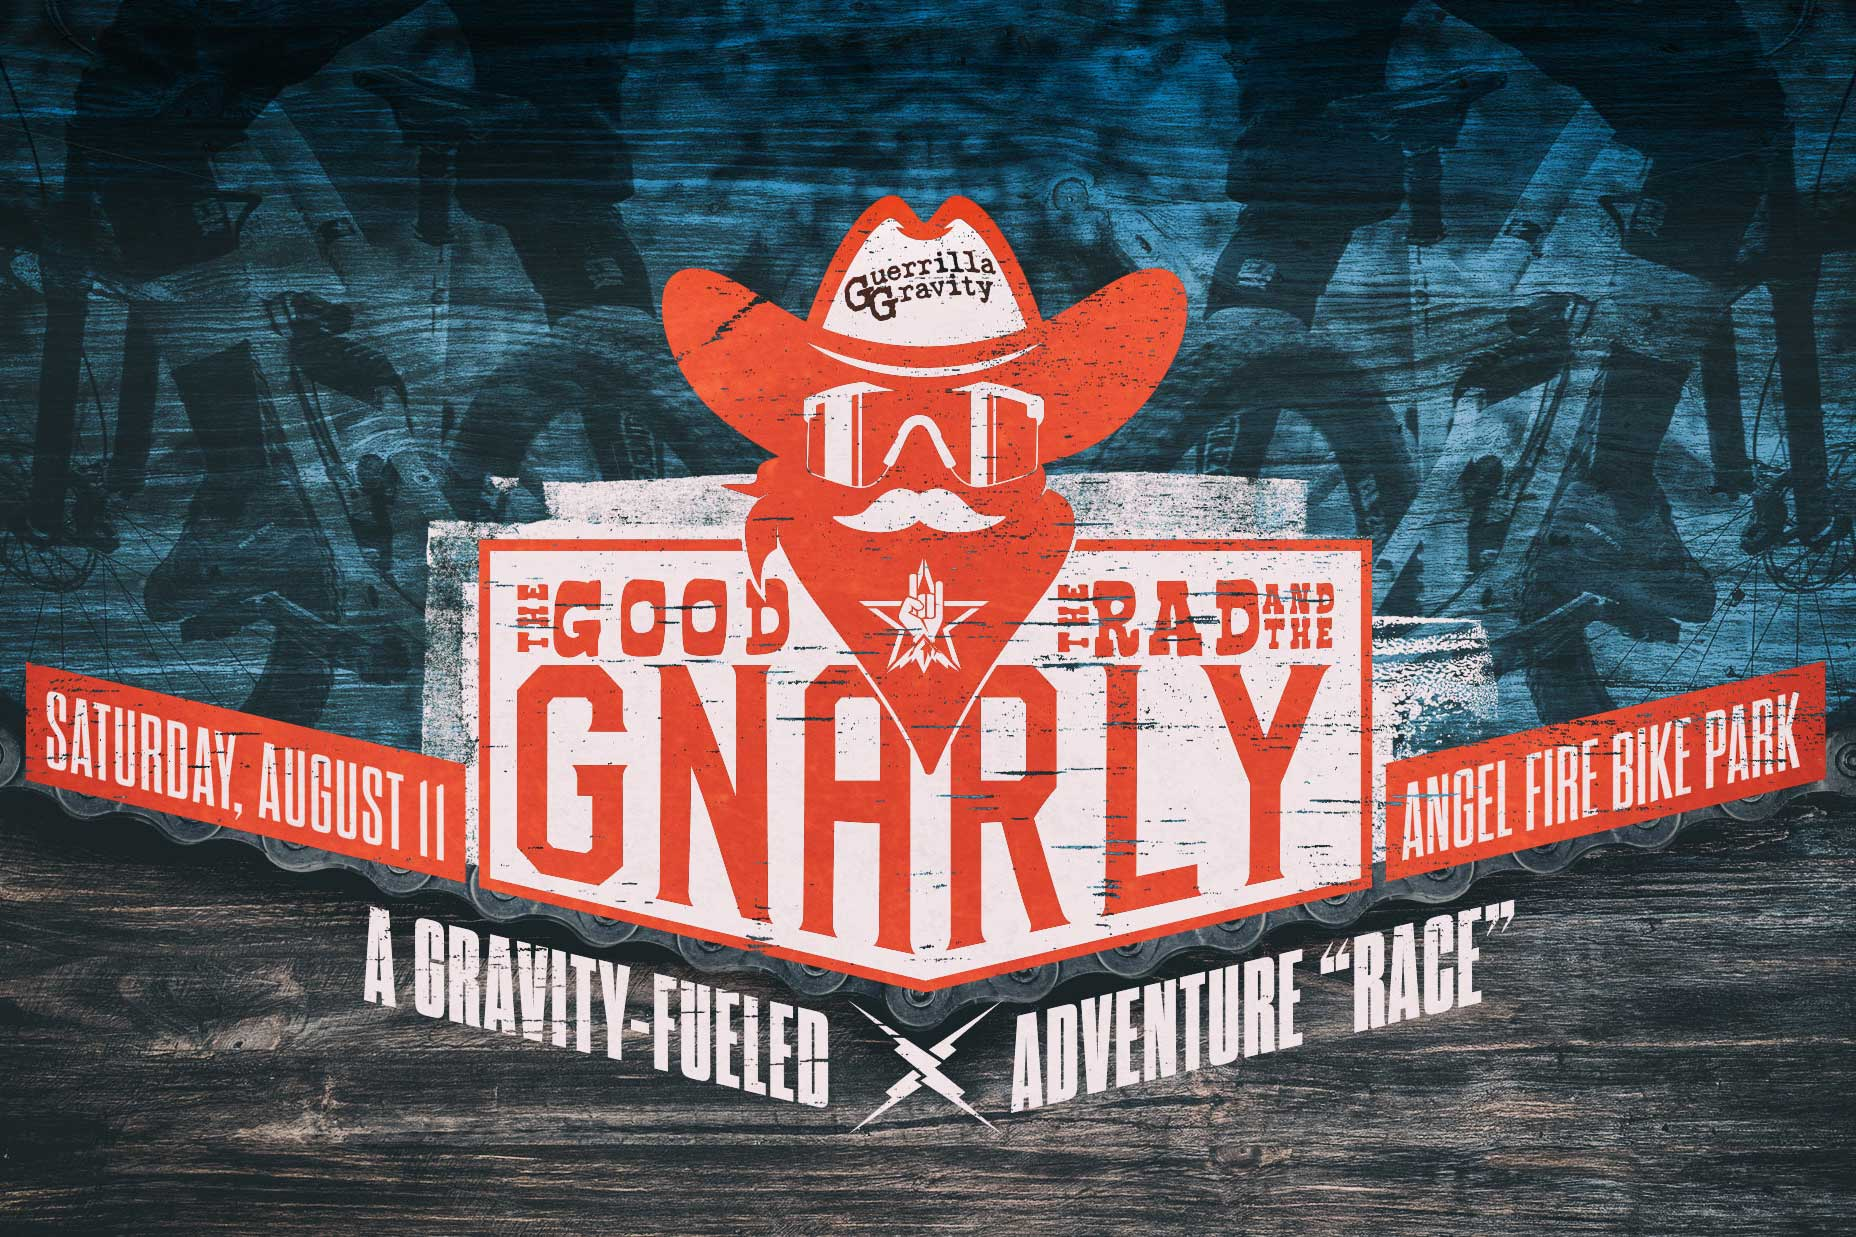 Guerrilla Gravity Giveaway – The Good, the Rad, and the Gnarly